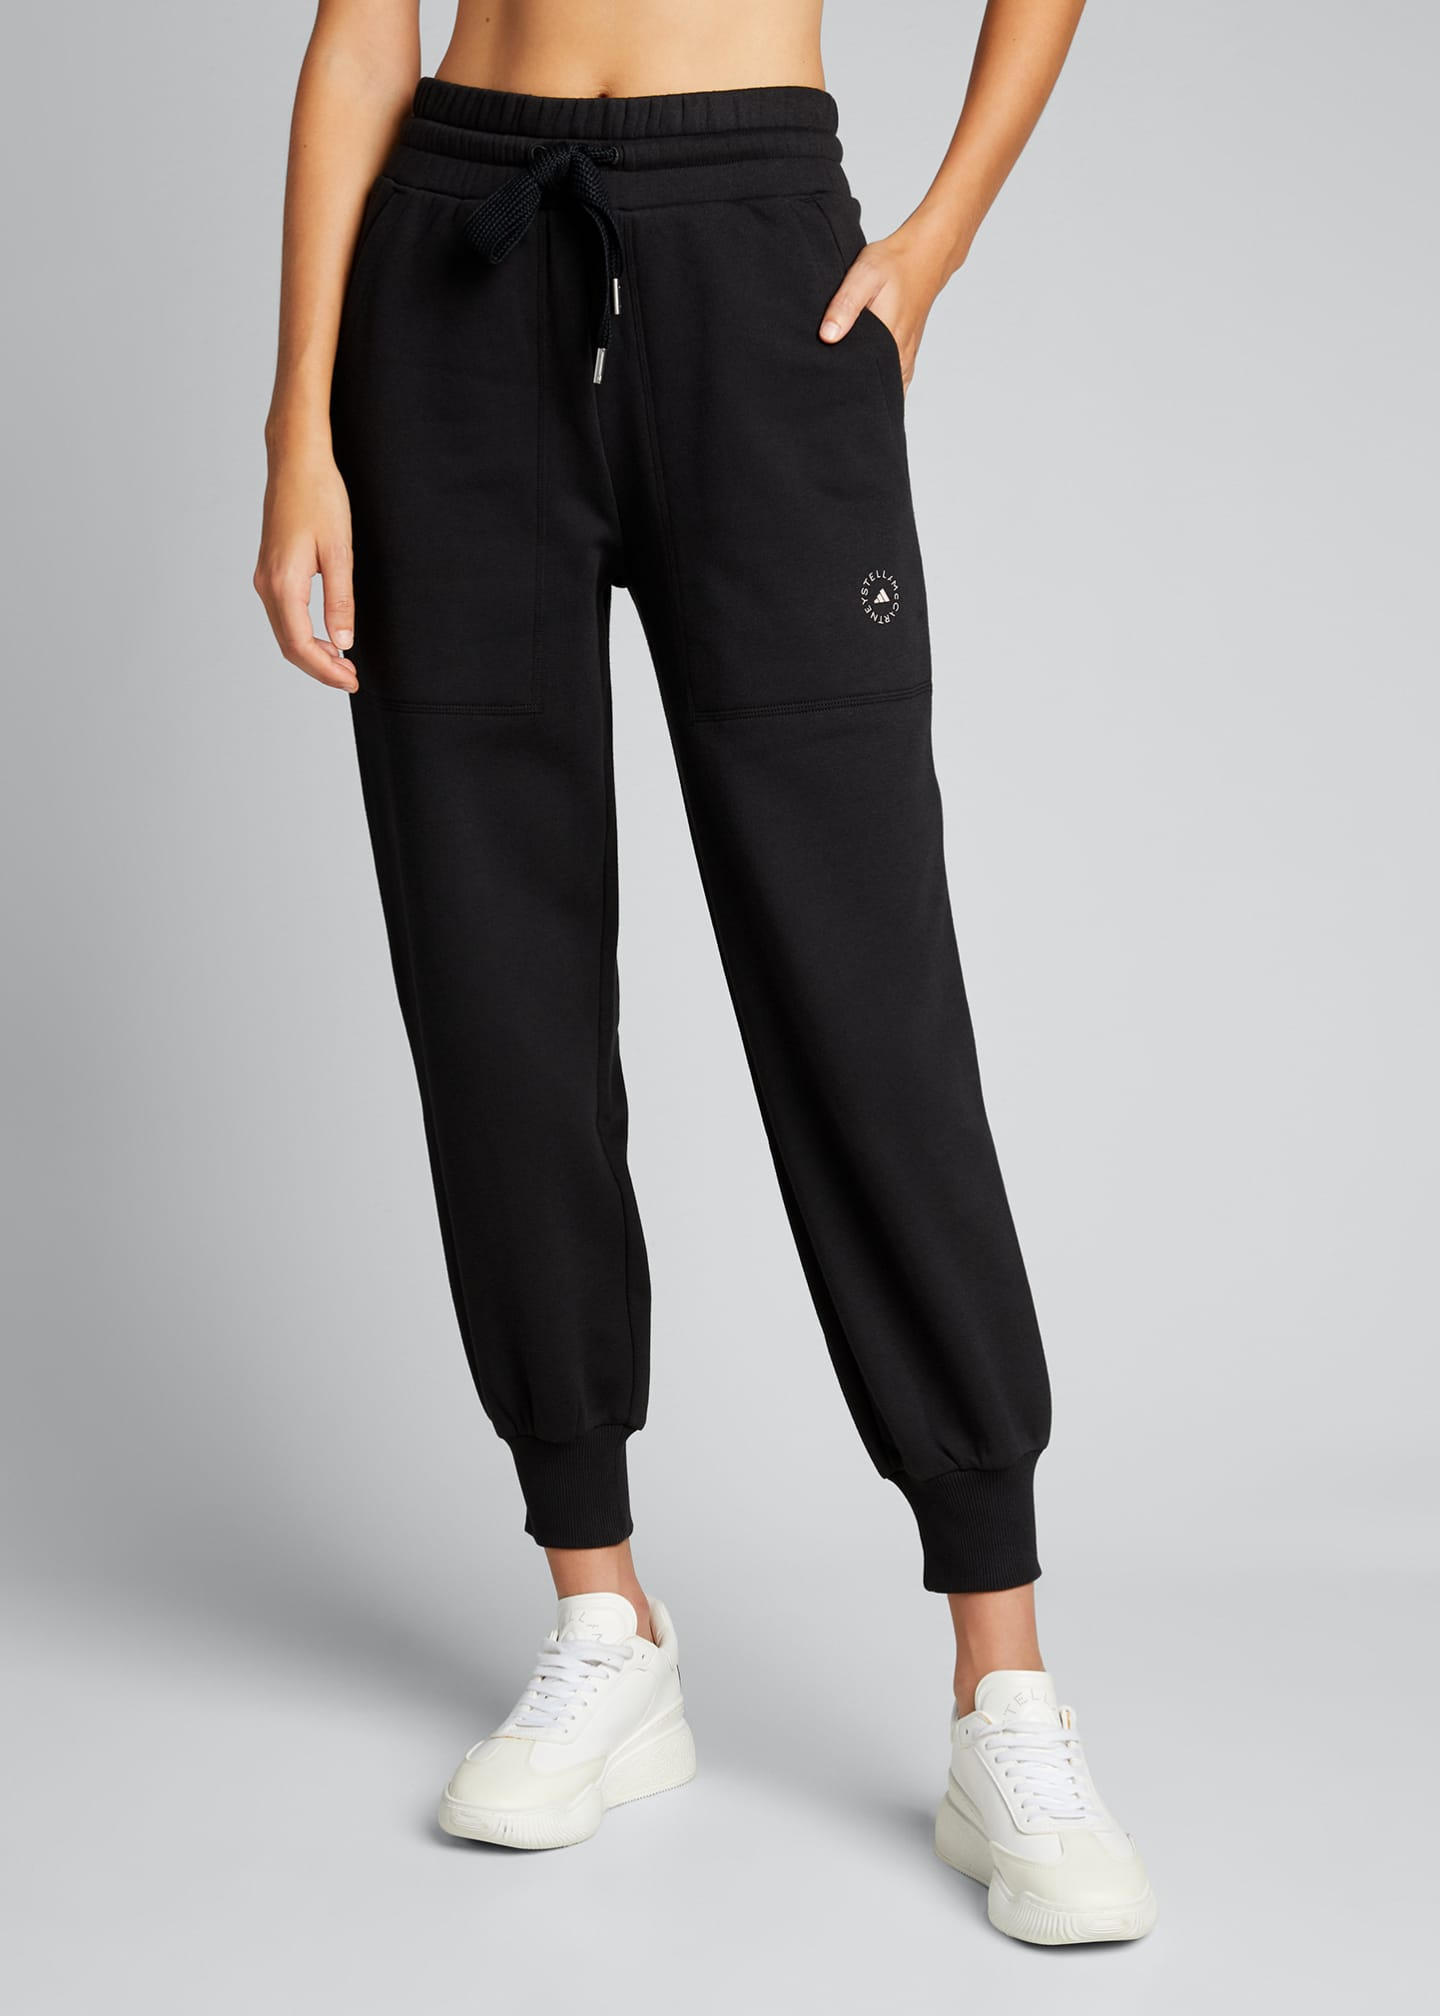 Image 3 of 5: French Terry Sweatpants